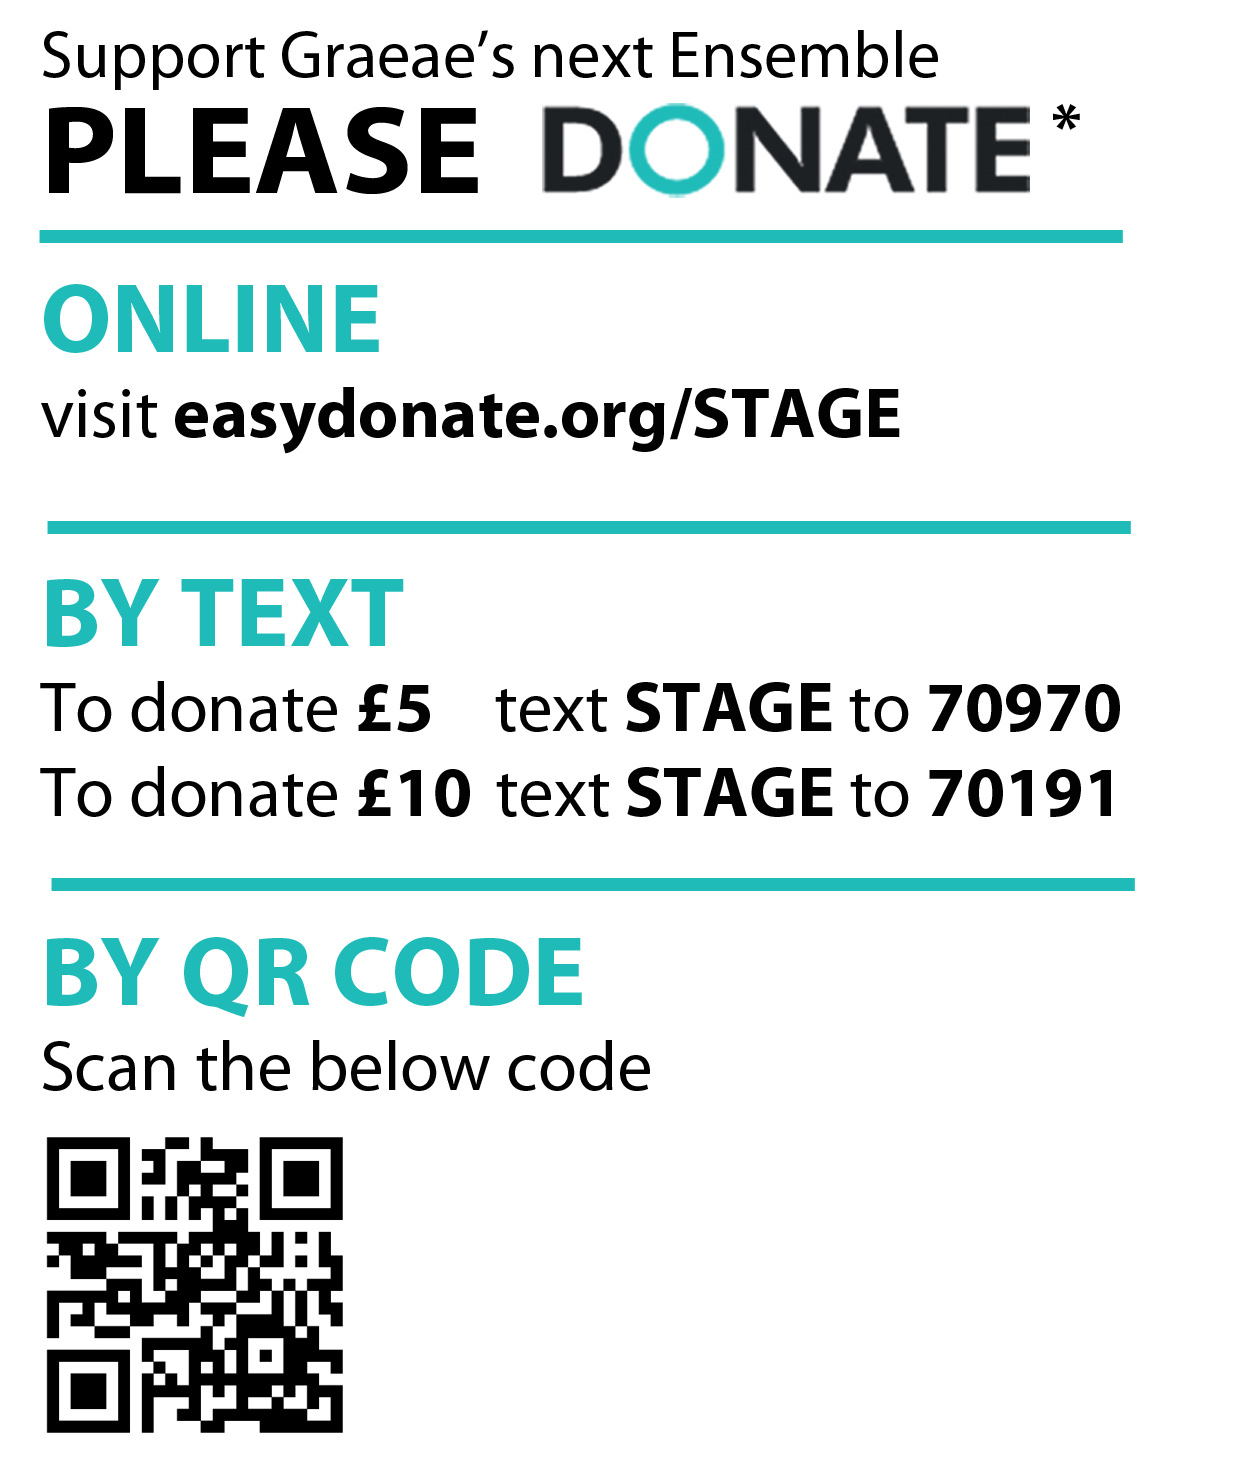 Support Graeae's next Ensemble. Please donate* : Online, visit www.easydonate.org/STAGE, by text: to donate £5 text STAGE to 70970. To donate £10 text STAGE to 70191.